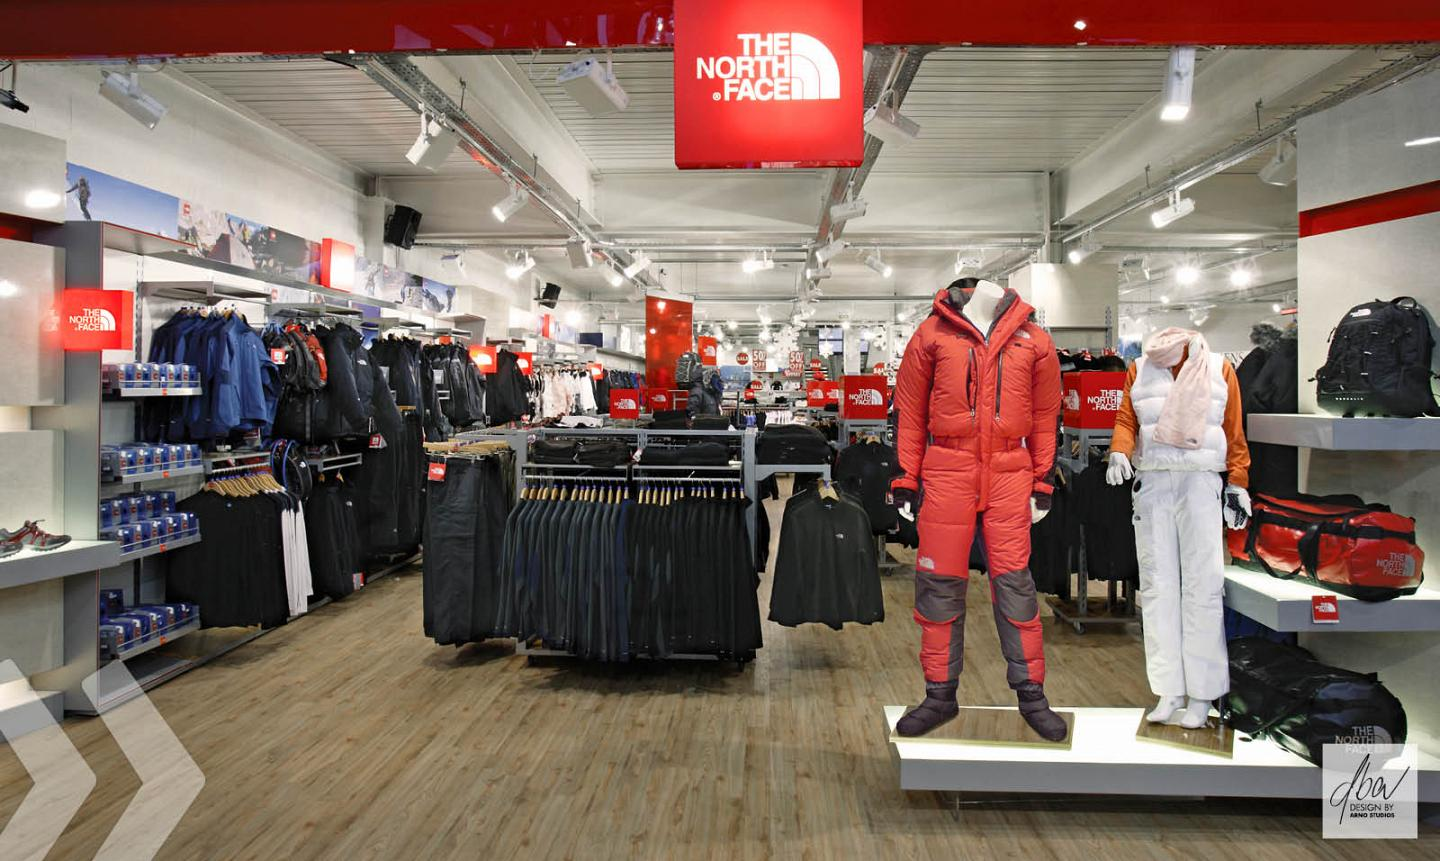 The North Face Shop in Shop 3